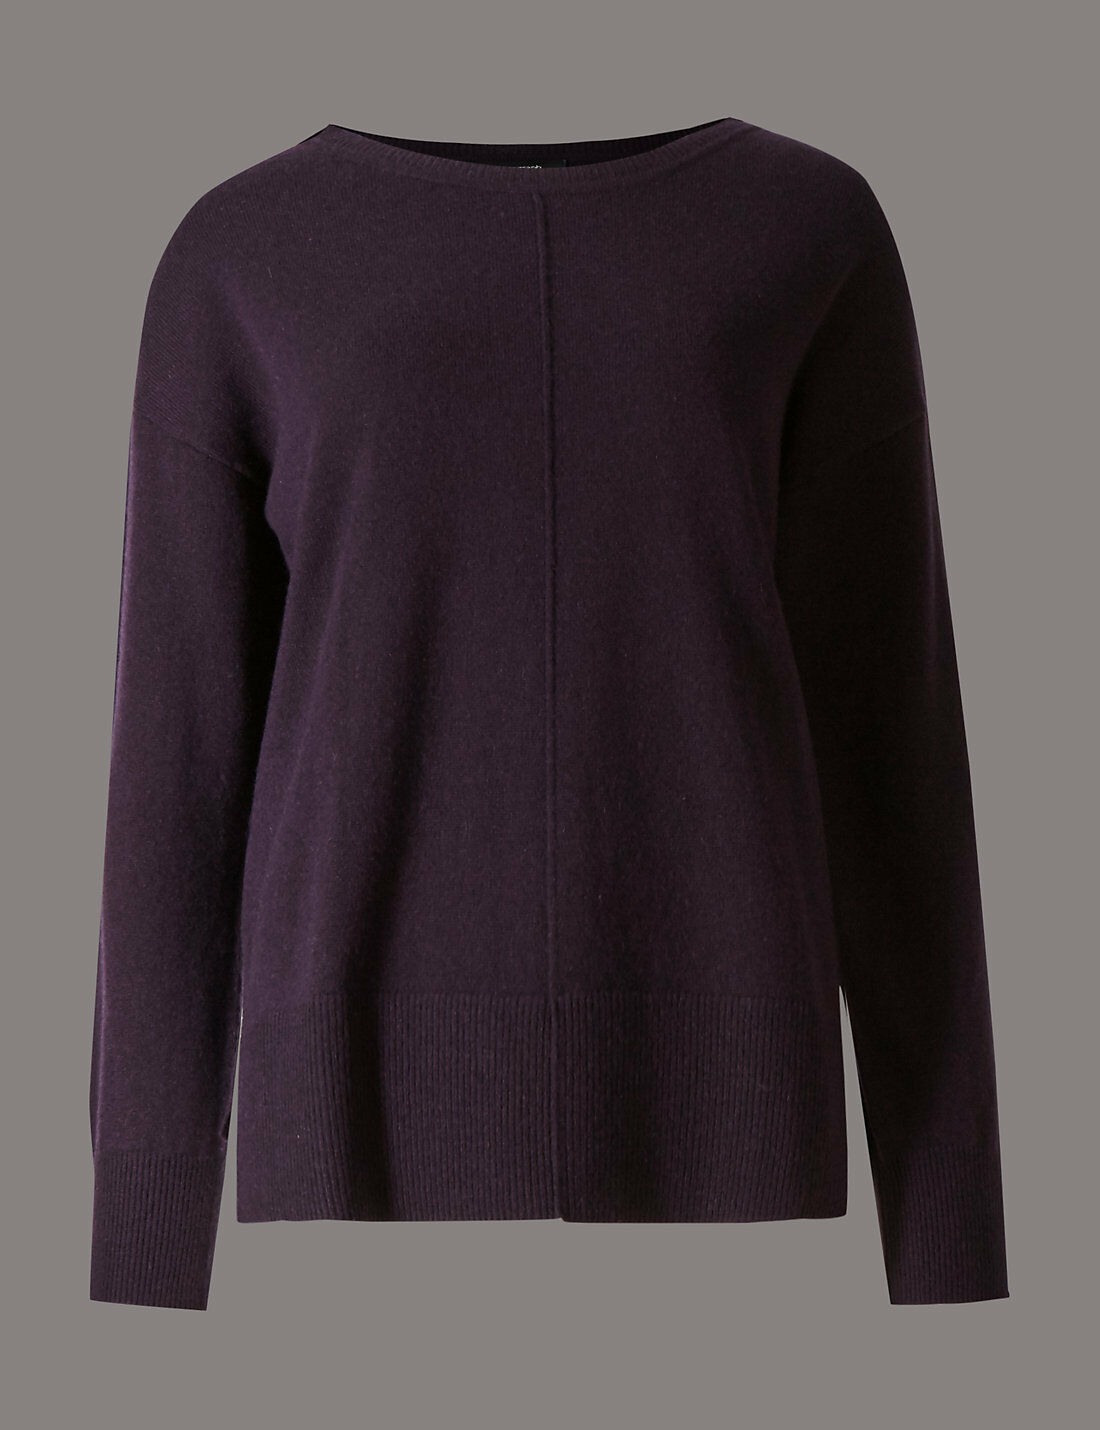 Pure cashmere Quetsch m&s Größe 10 Couture Pull Bnwt